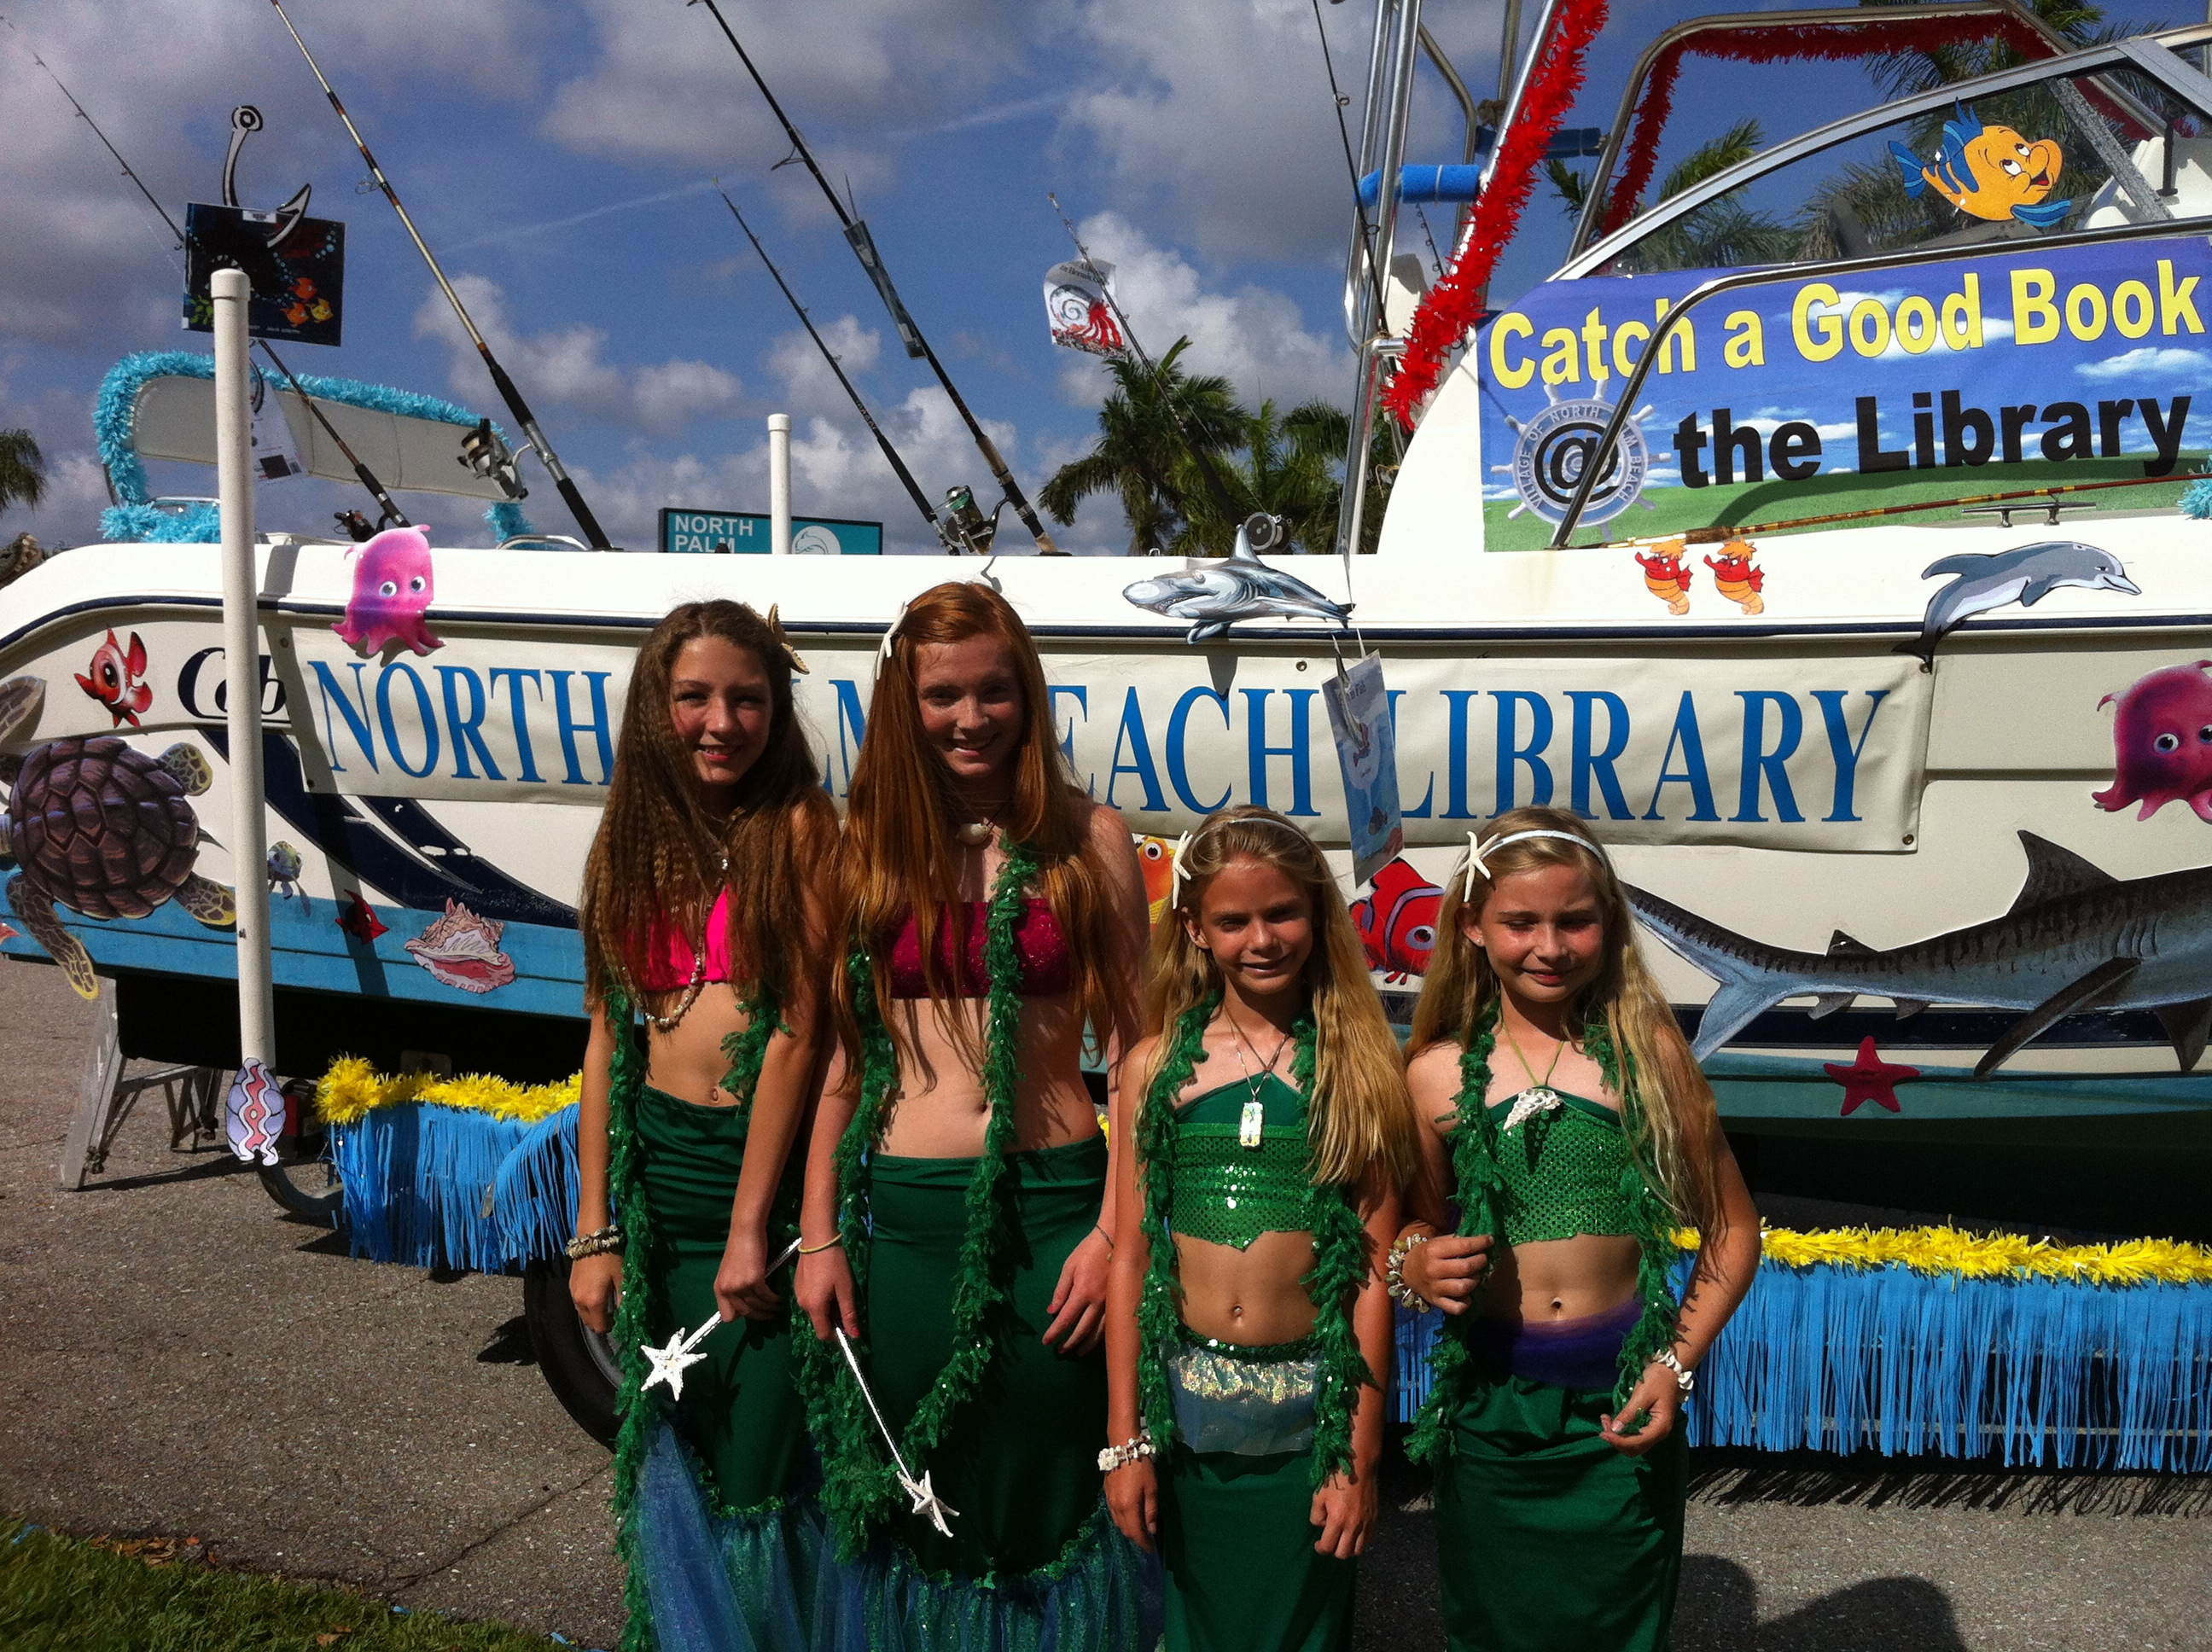 Some sea-ladies stand in front of the float